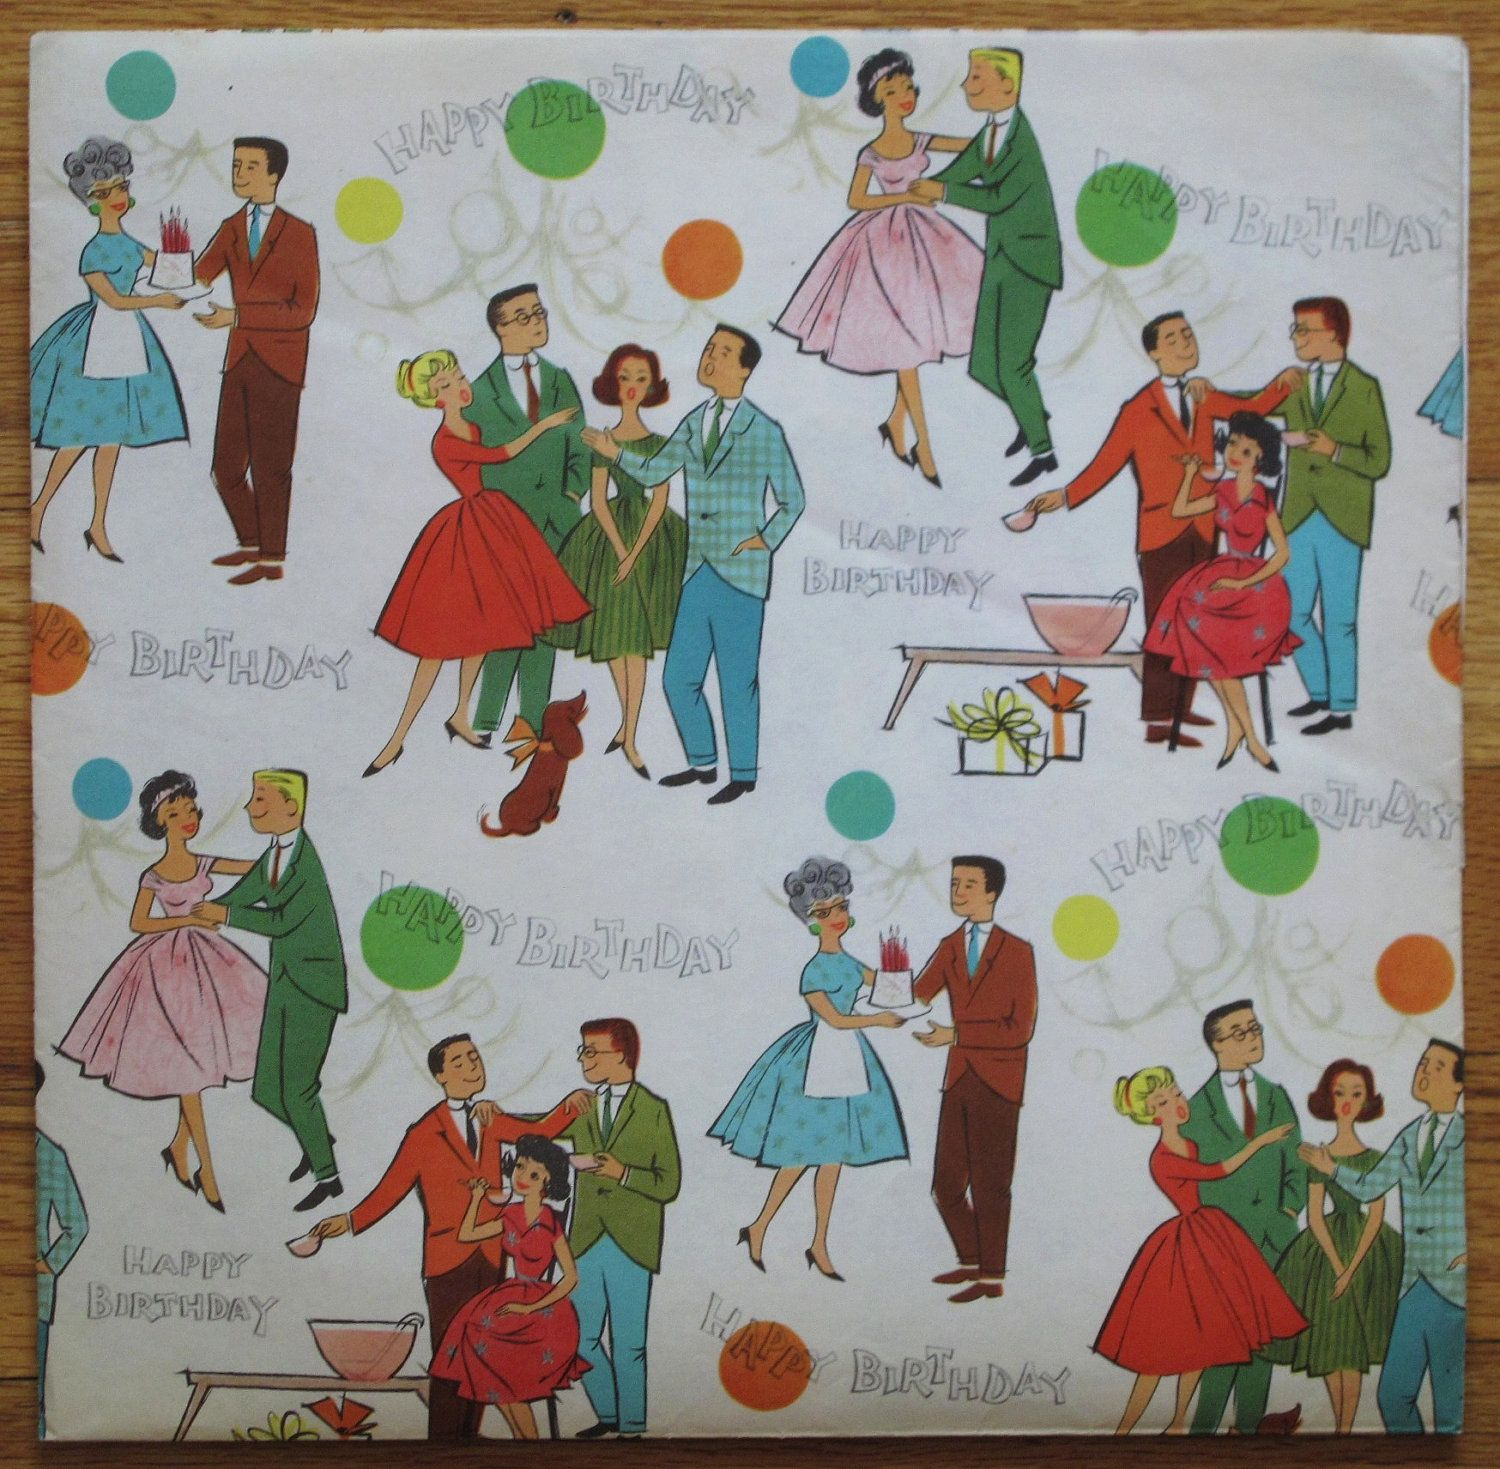 Vintage BIRTHDAY Gift Wrap Wrapping Paper MAD MEN Party Mid Century Illustration 1950s 1960s